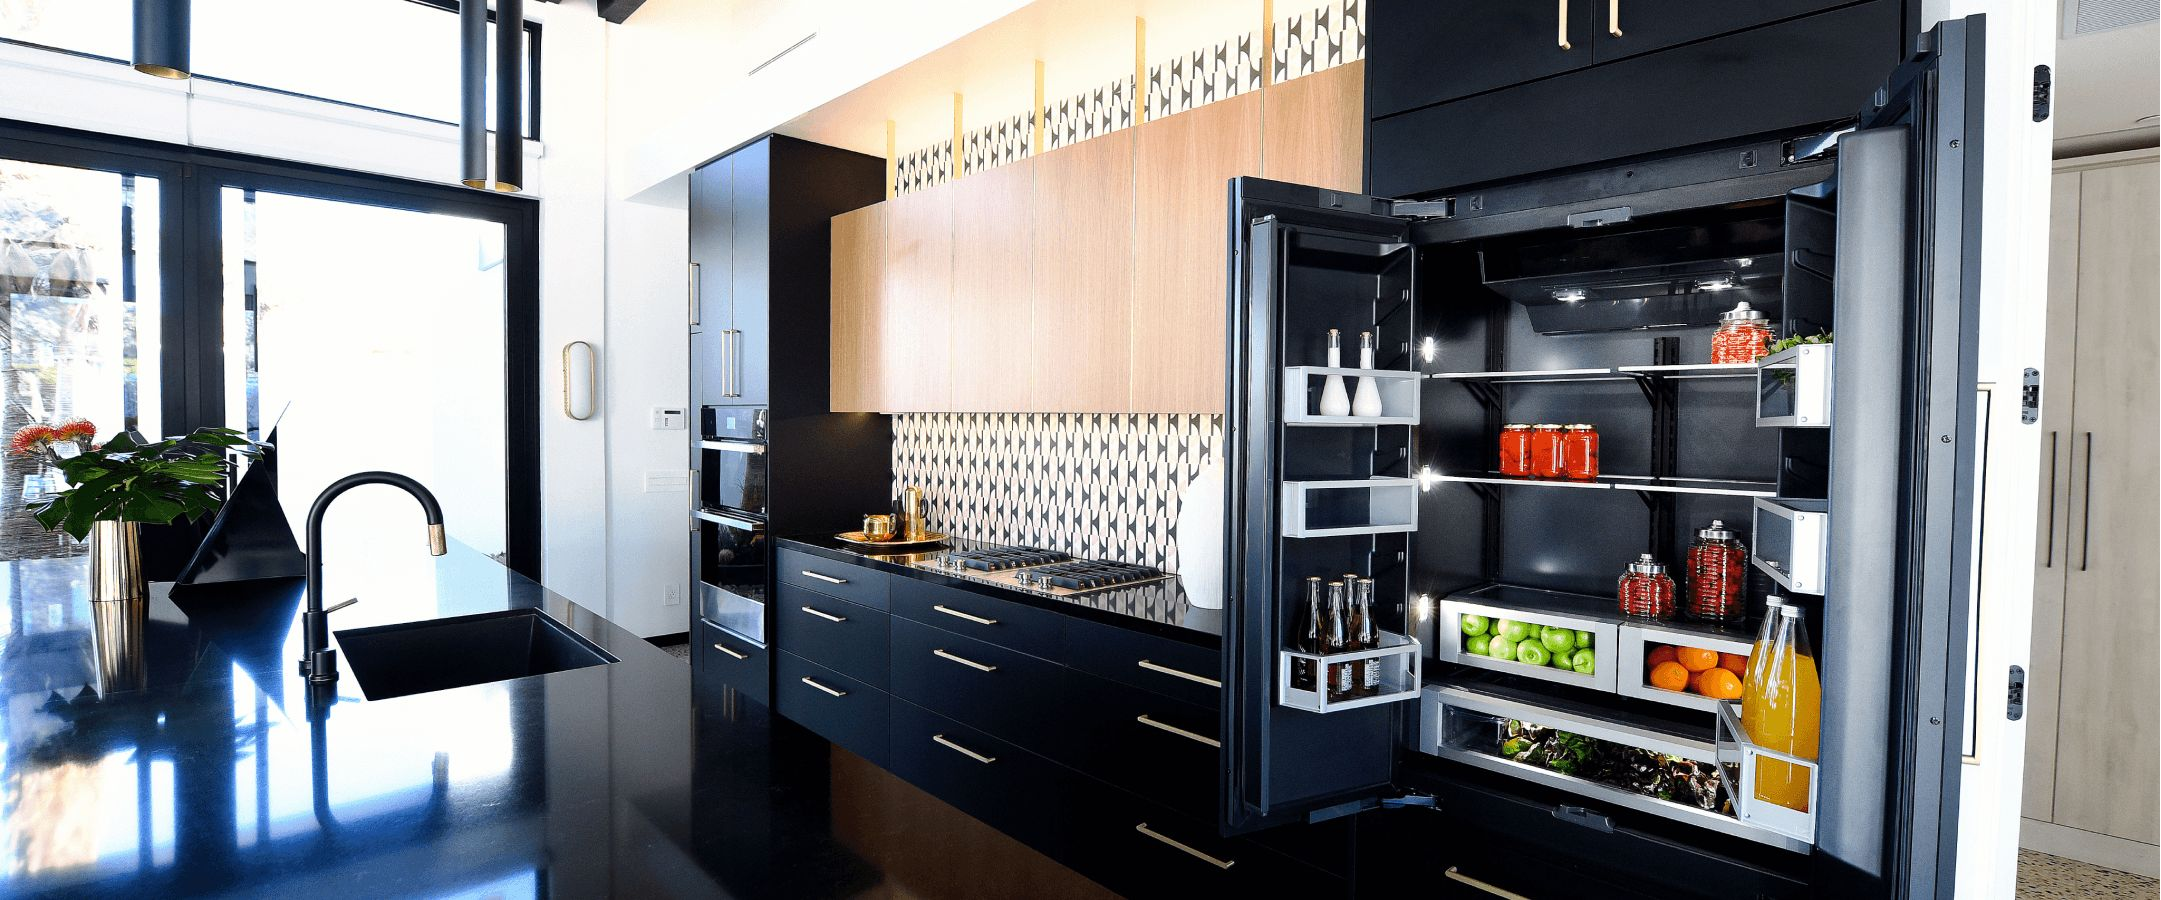 A JennAir® Built-In French Door Refrigerator in a beautifully designed kitchen.